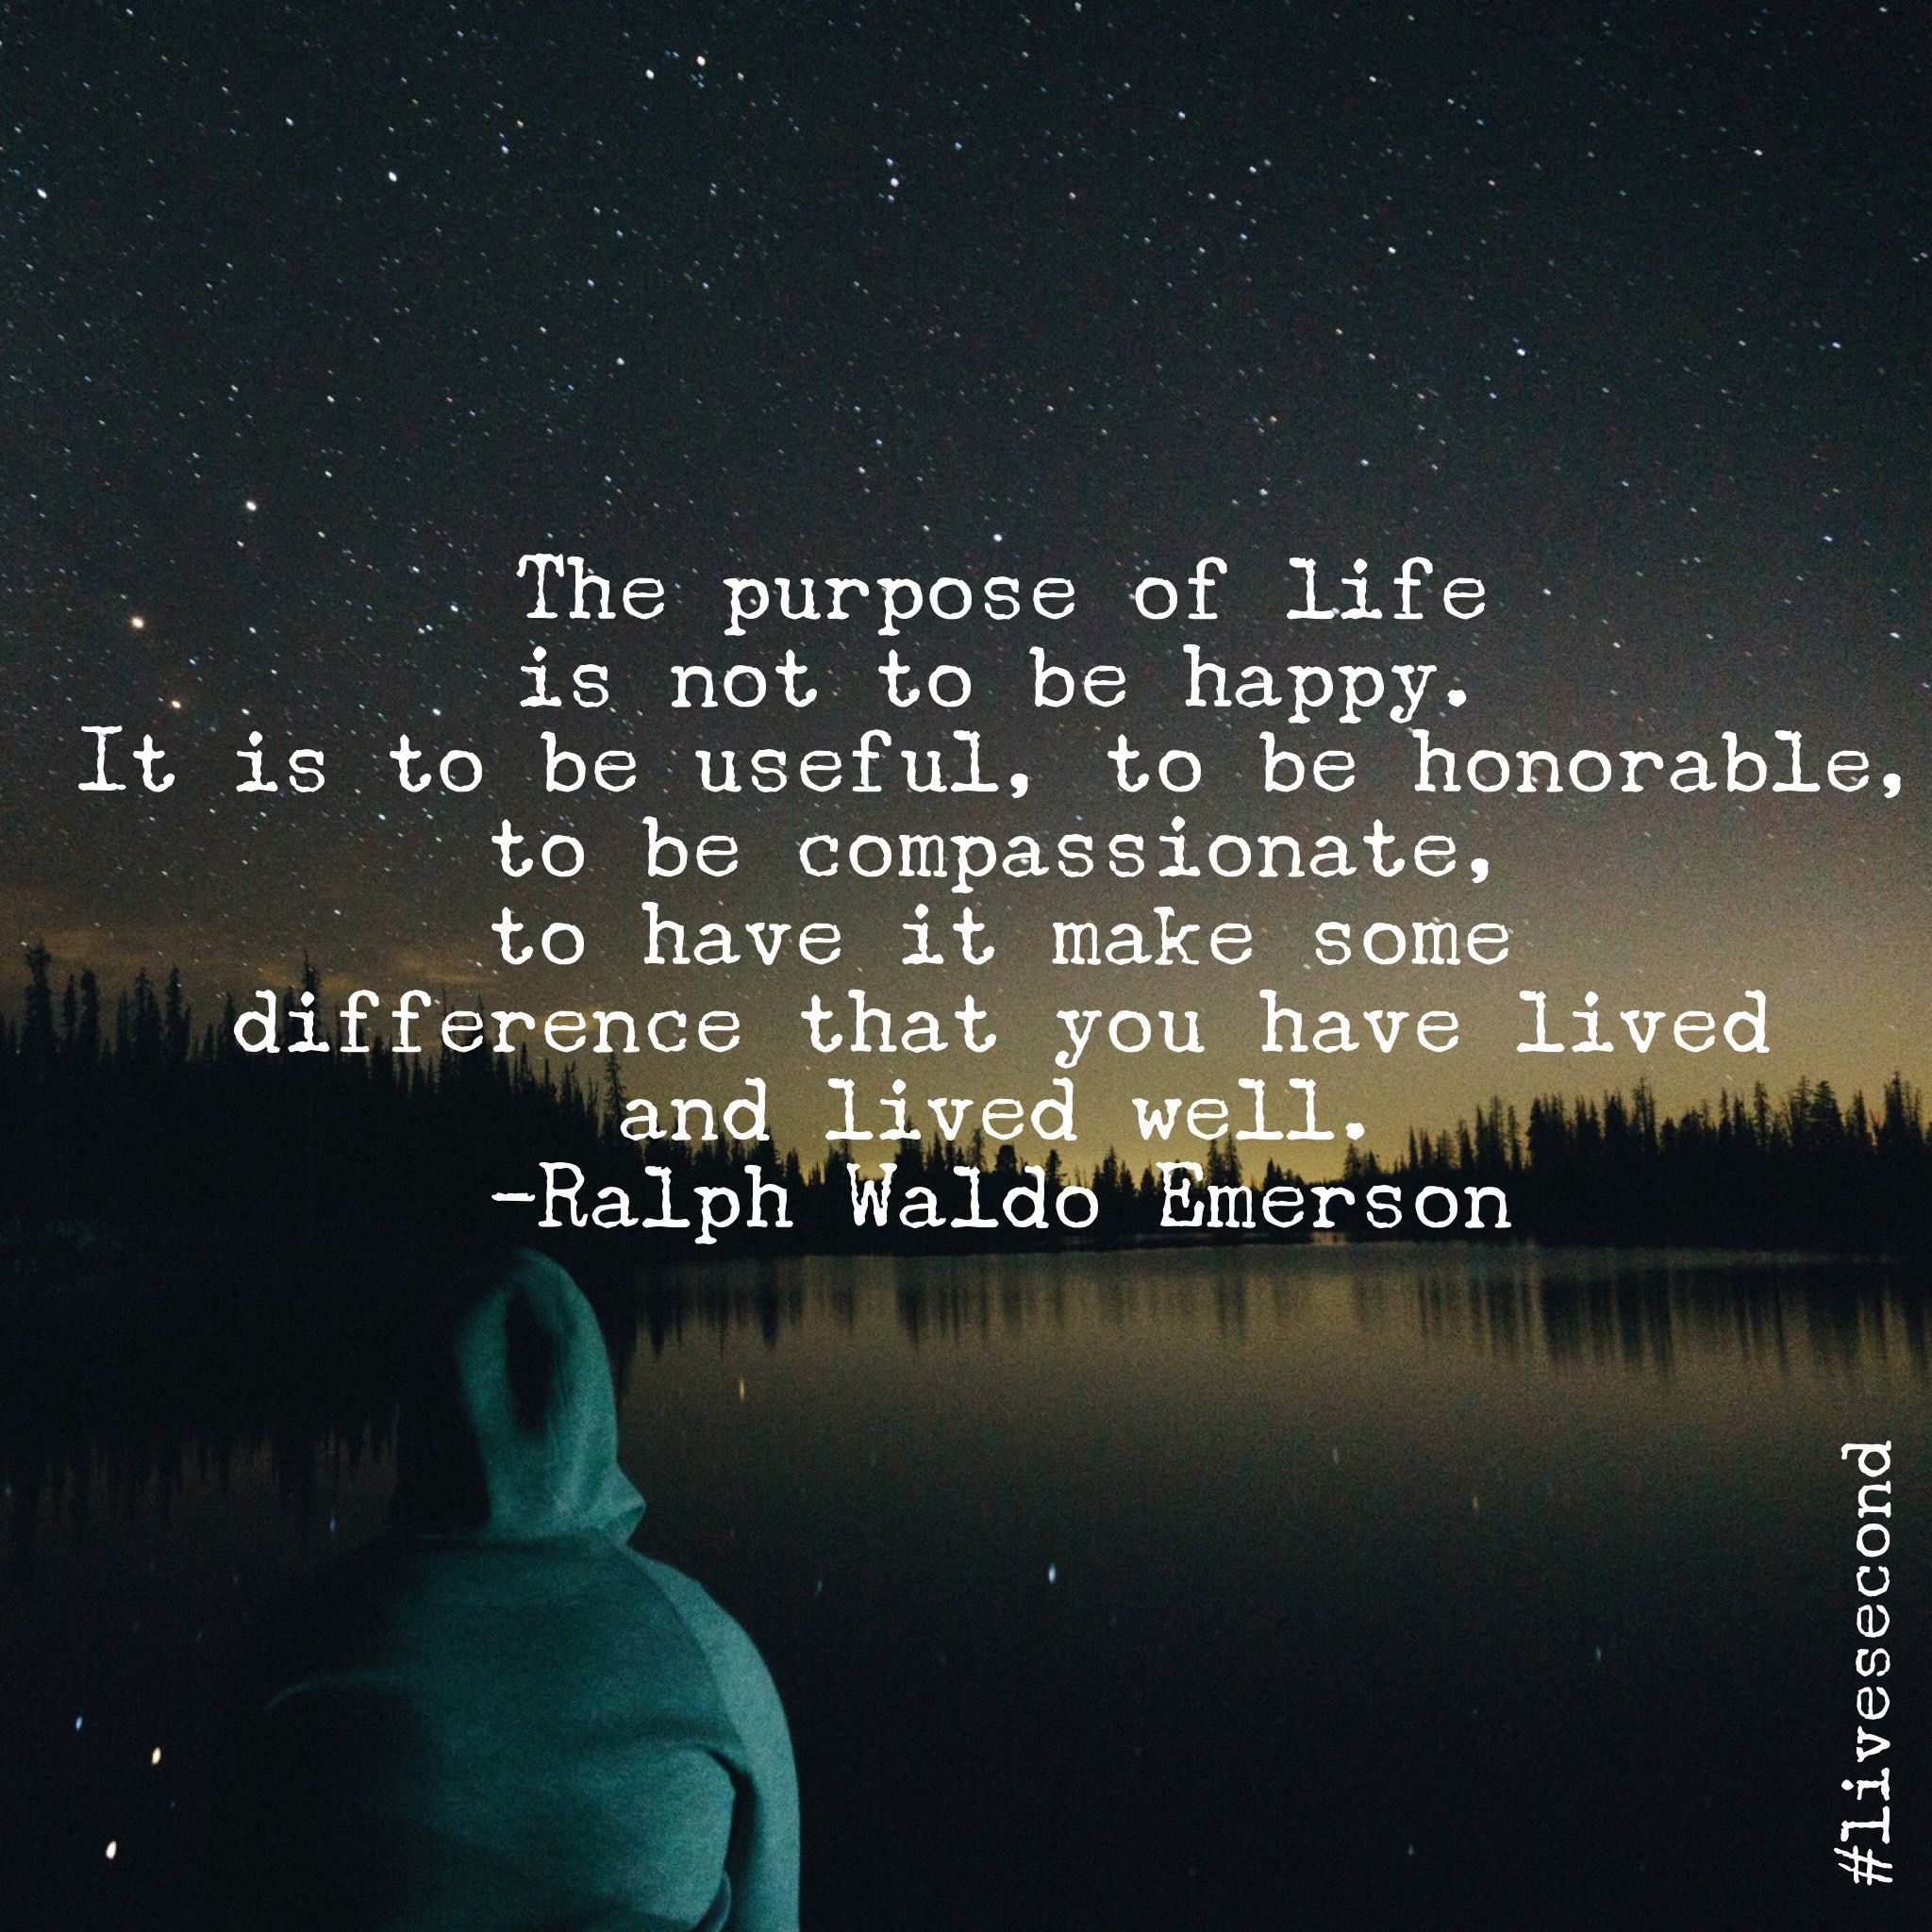 The purpose of life is not to be happy. It is to be useful